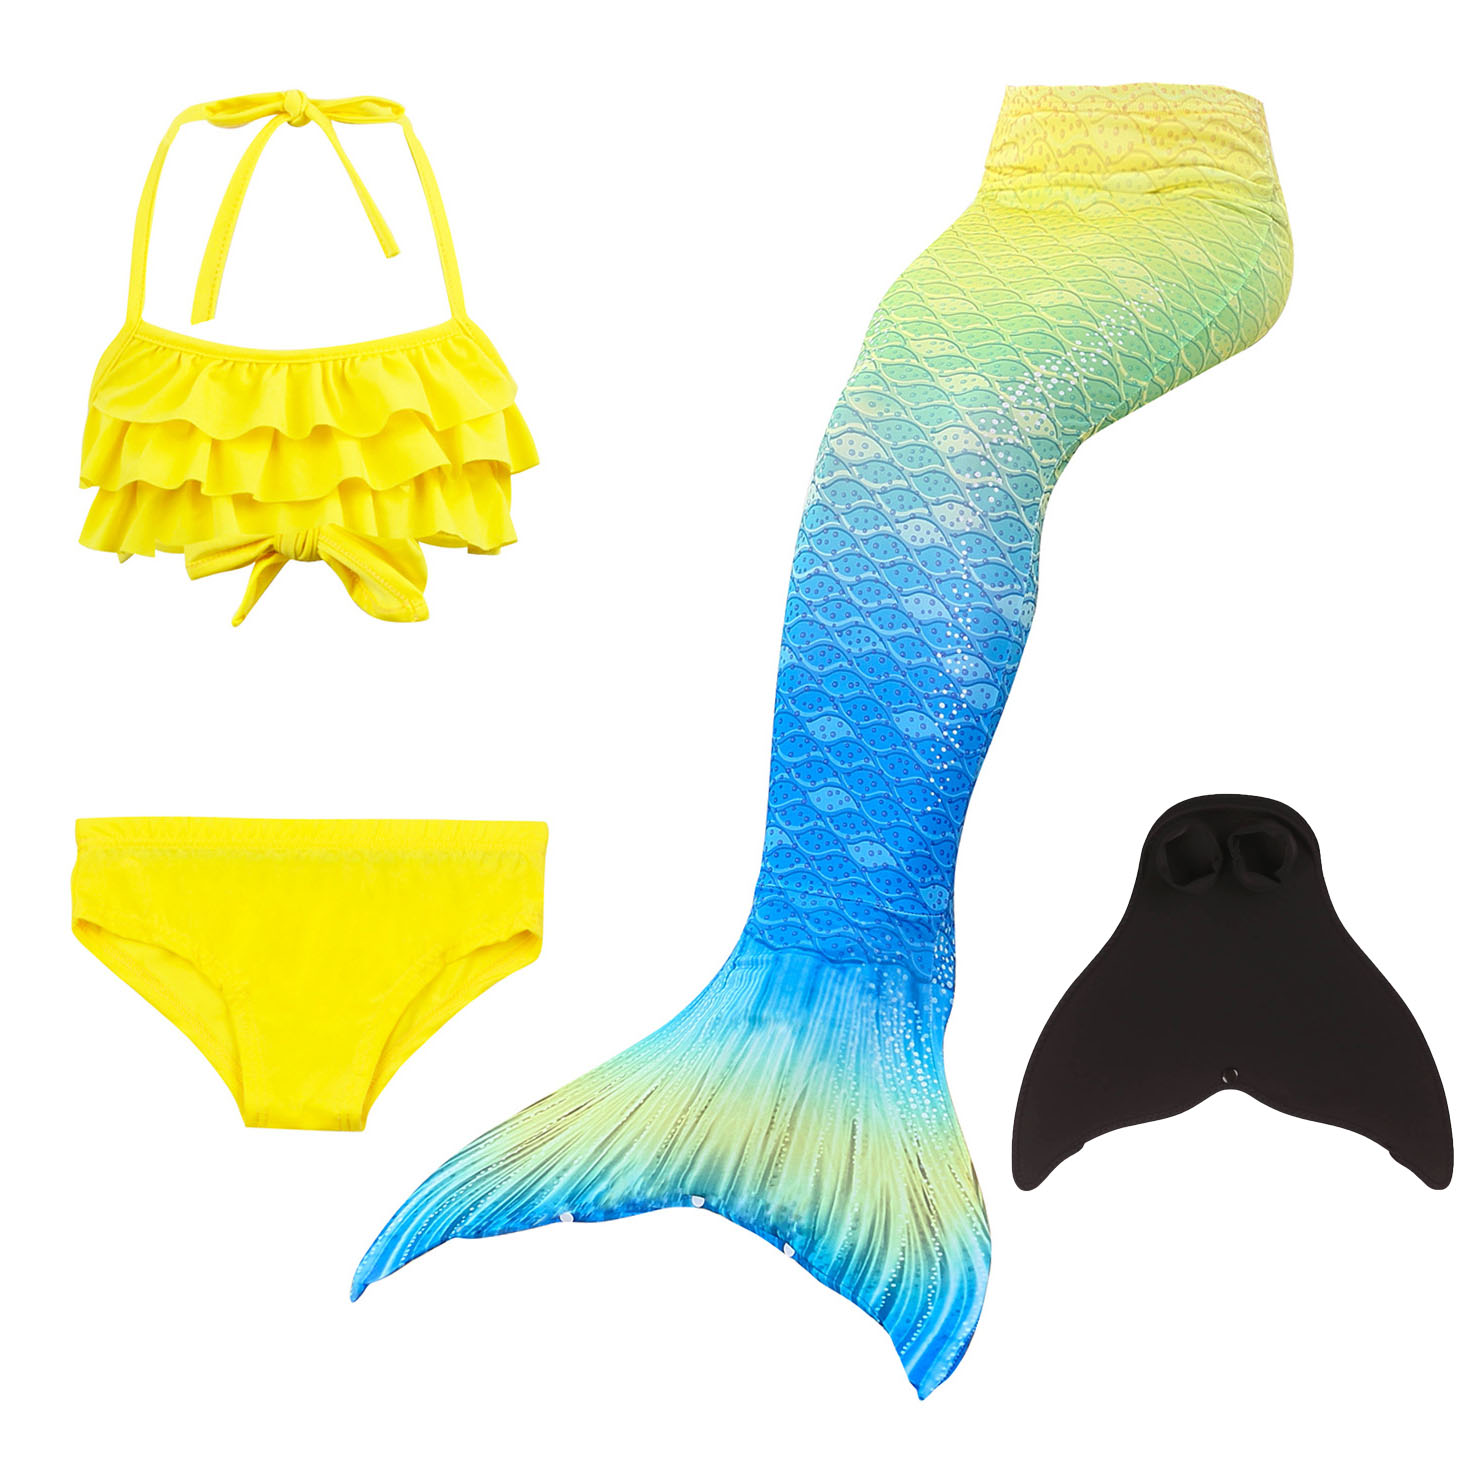 Kids Fin Swimsuit Bathing Clothes Suit Tail Mermaid Carnival Costumes Swimsuit for Girls Swimming Costume(China)